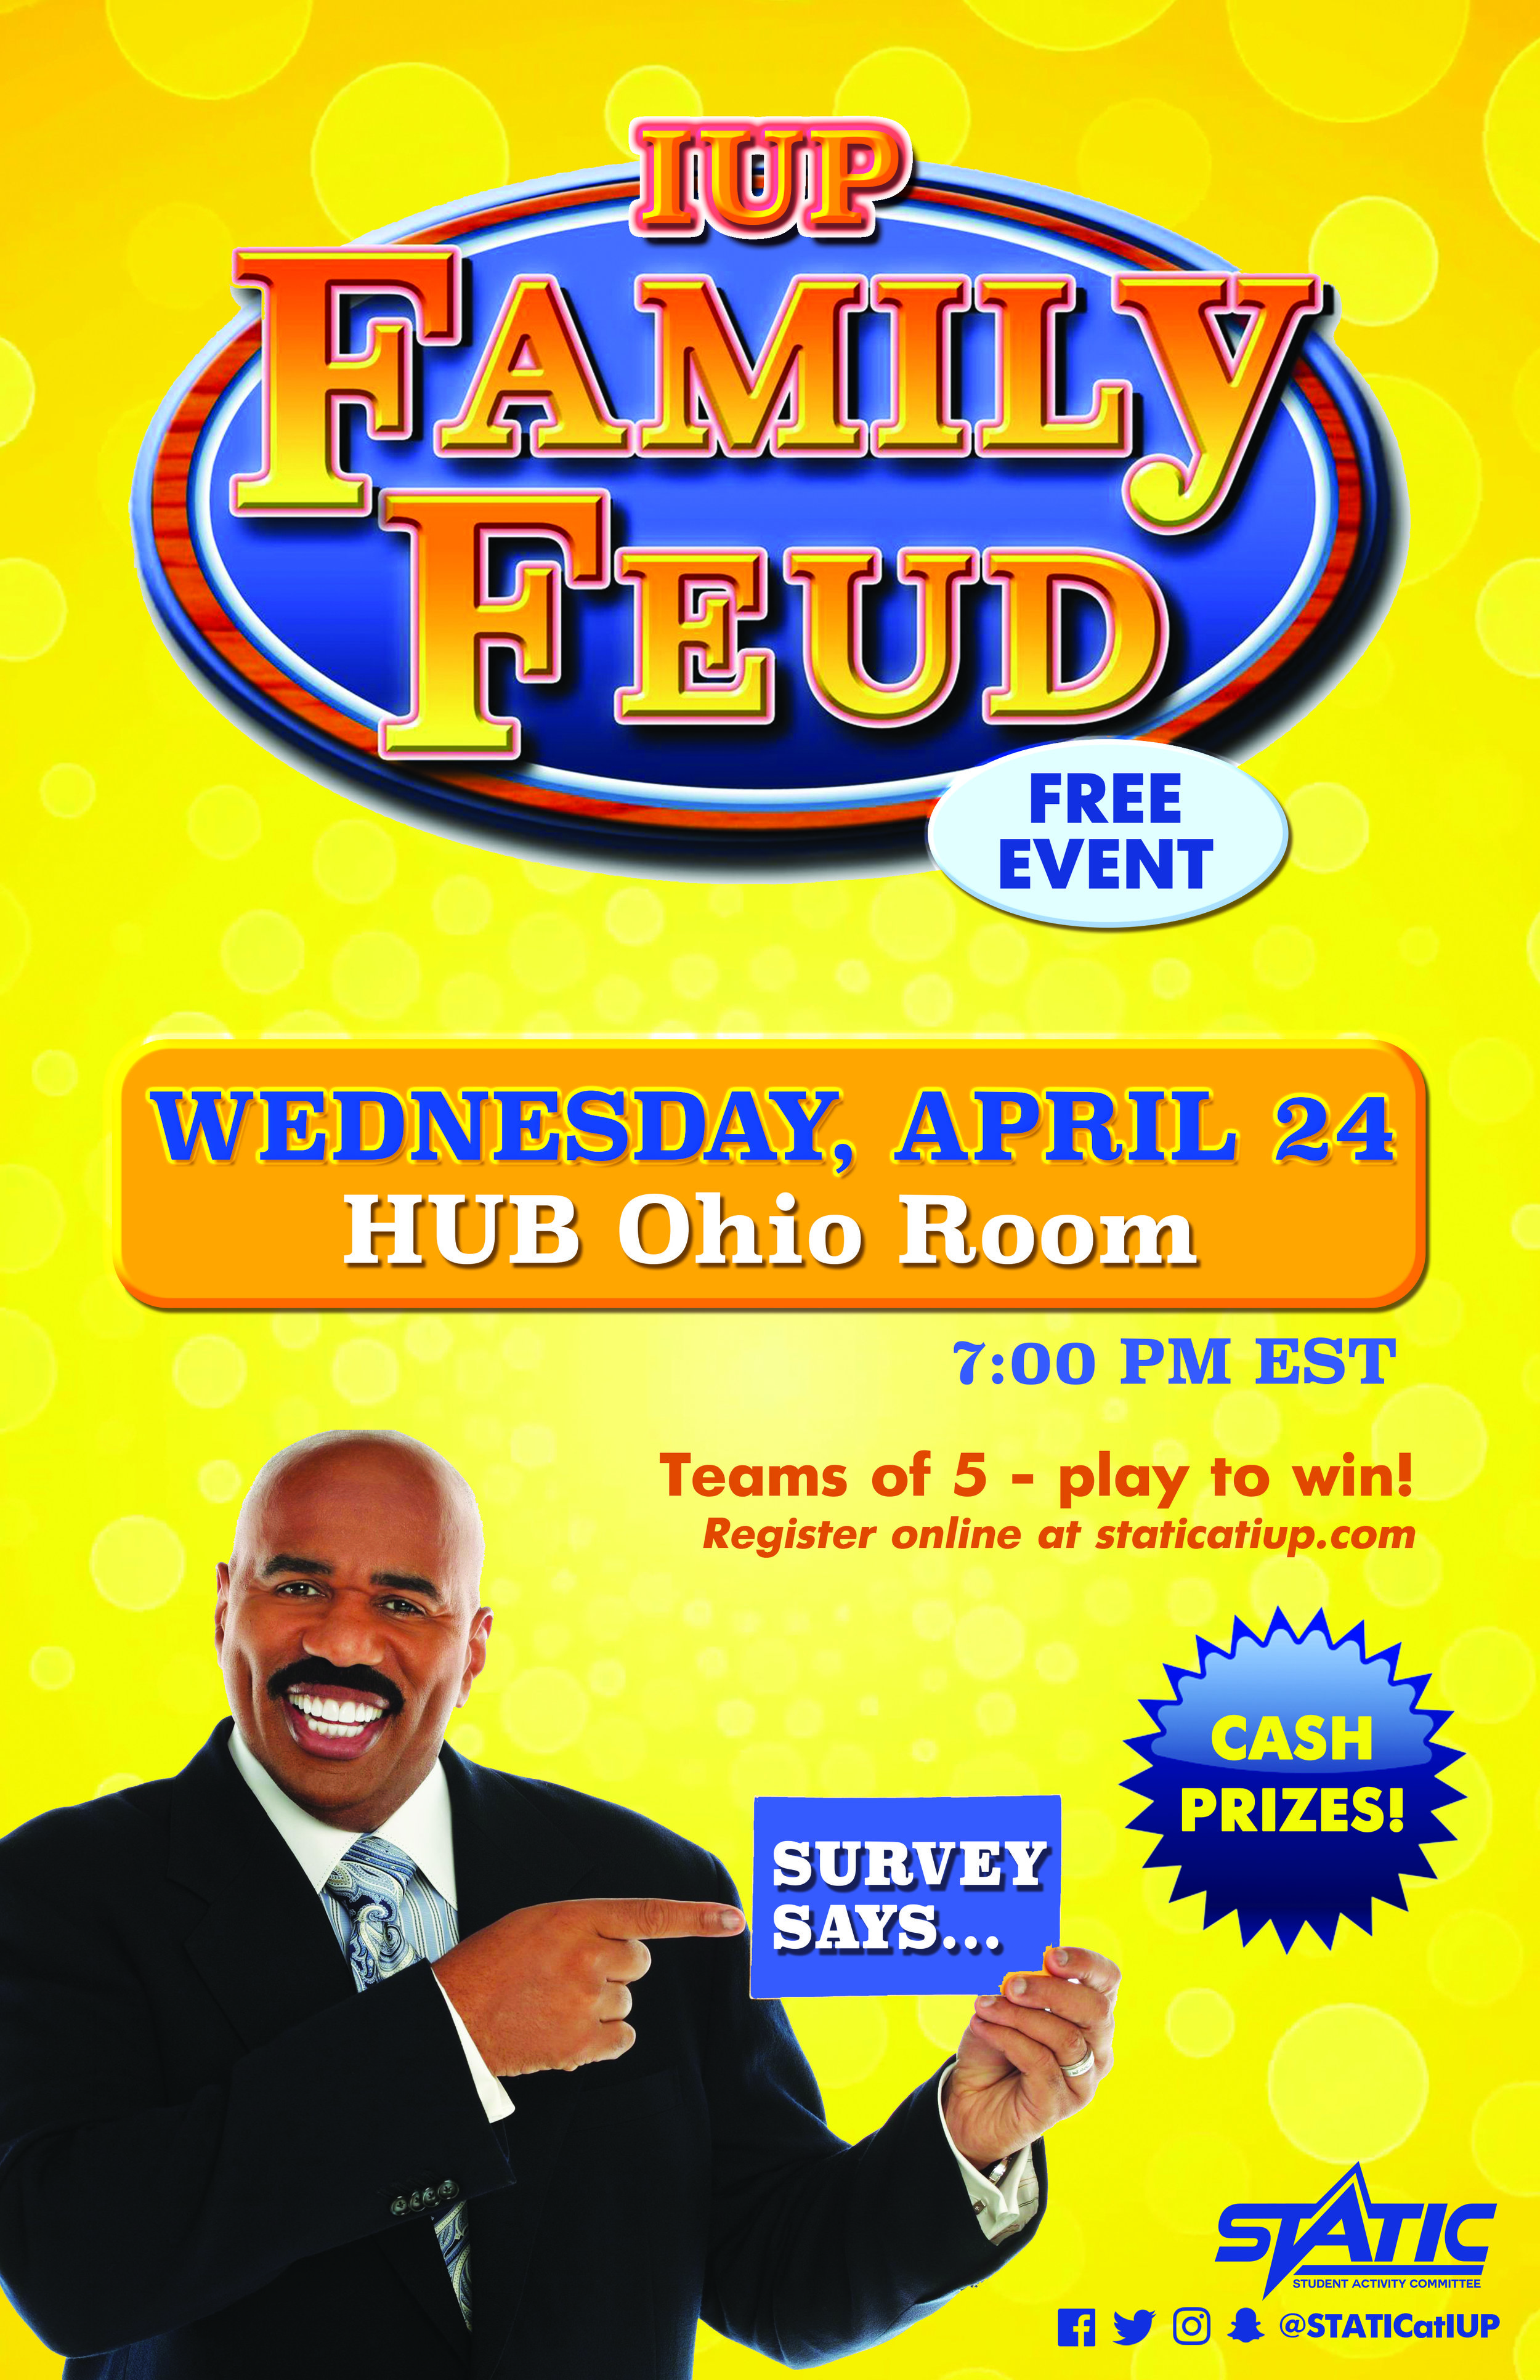 Family Feud — STATIC at IUP